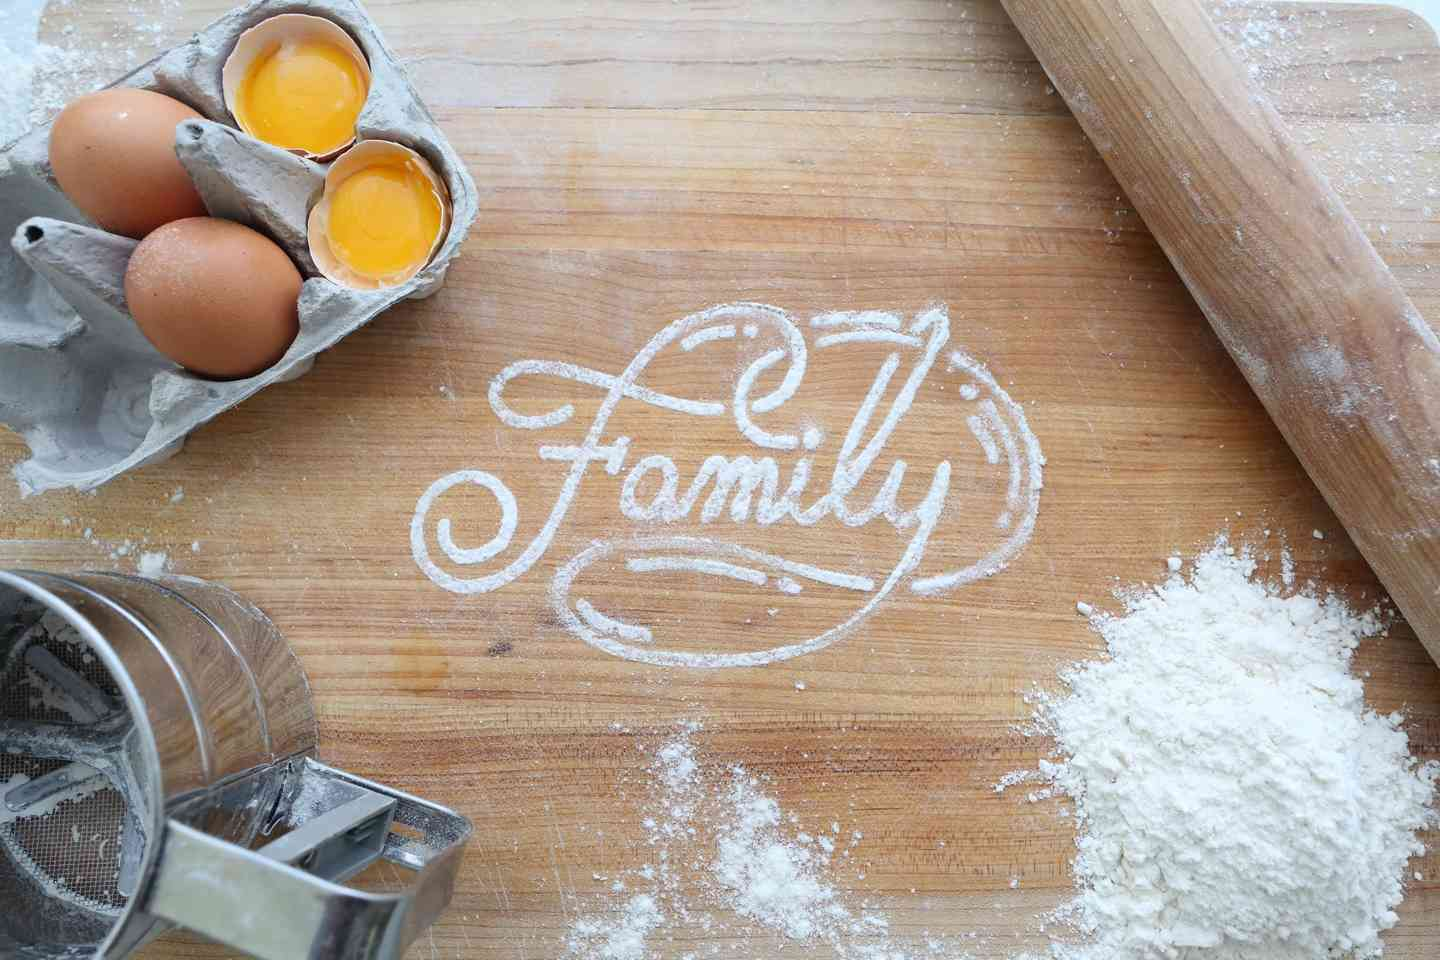 Cutting board with Family written in flour